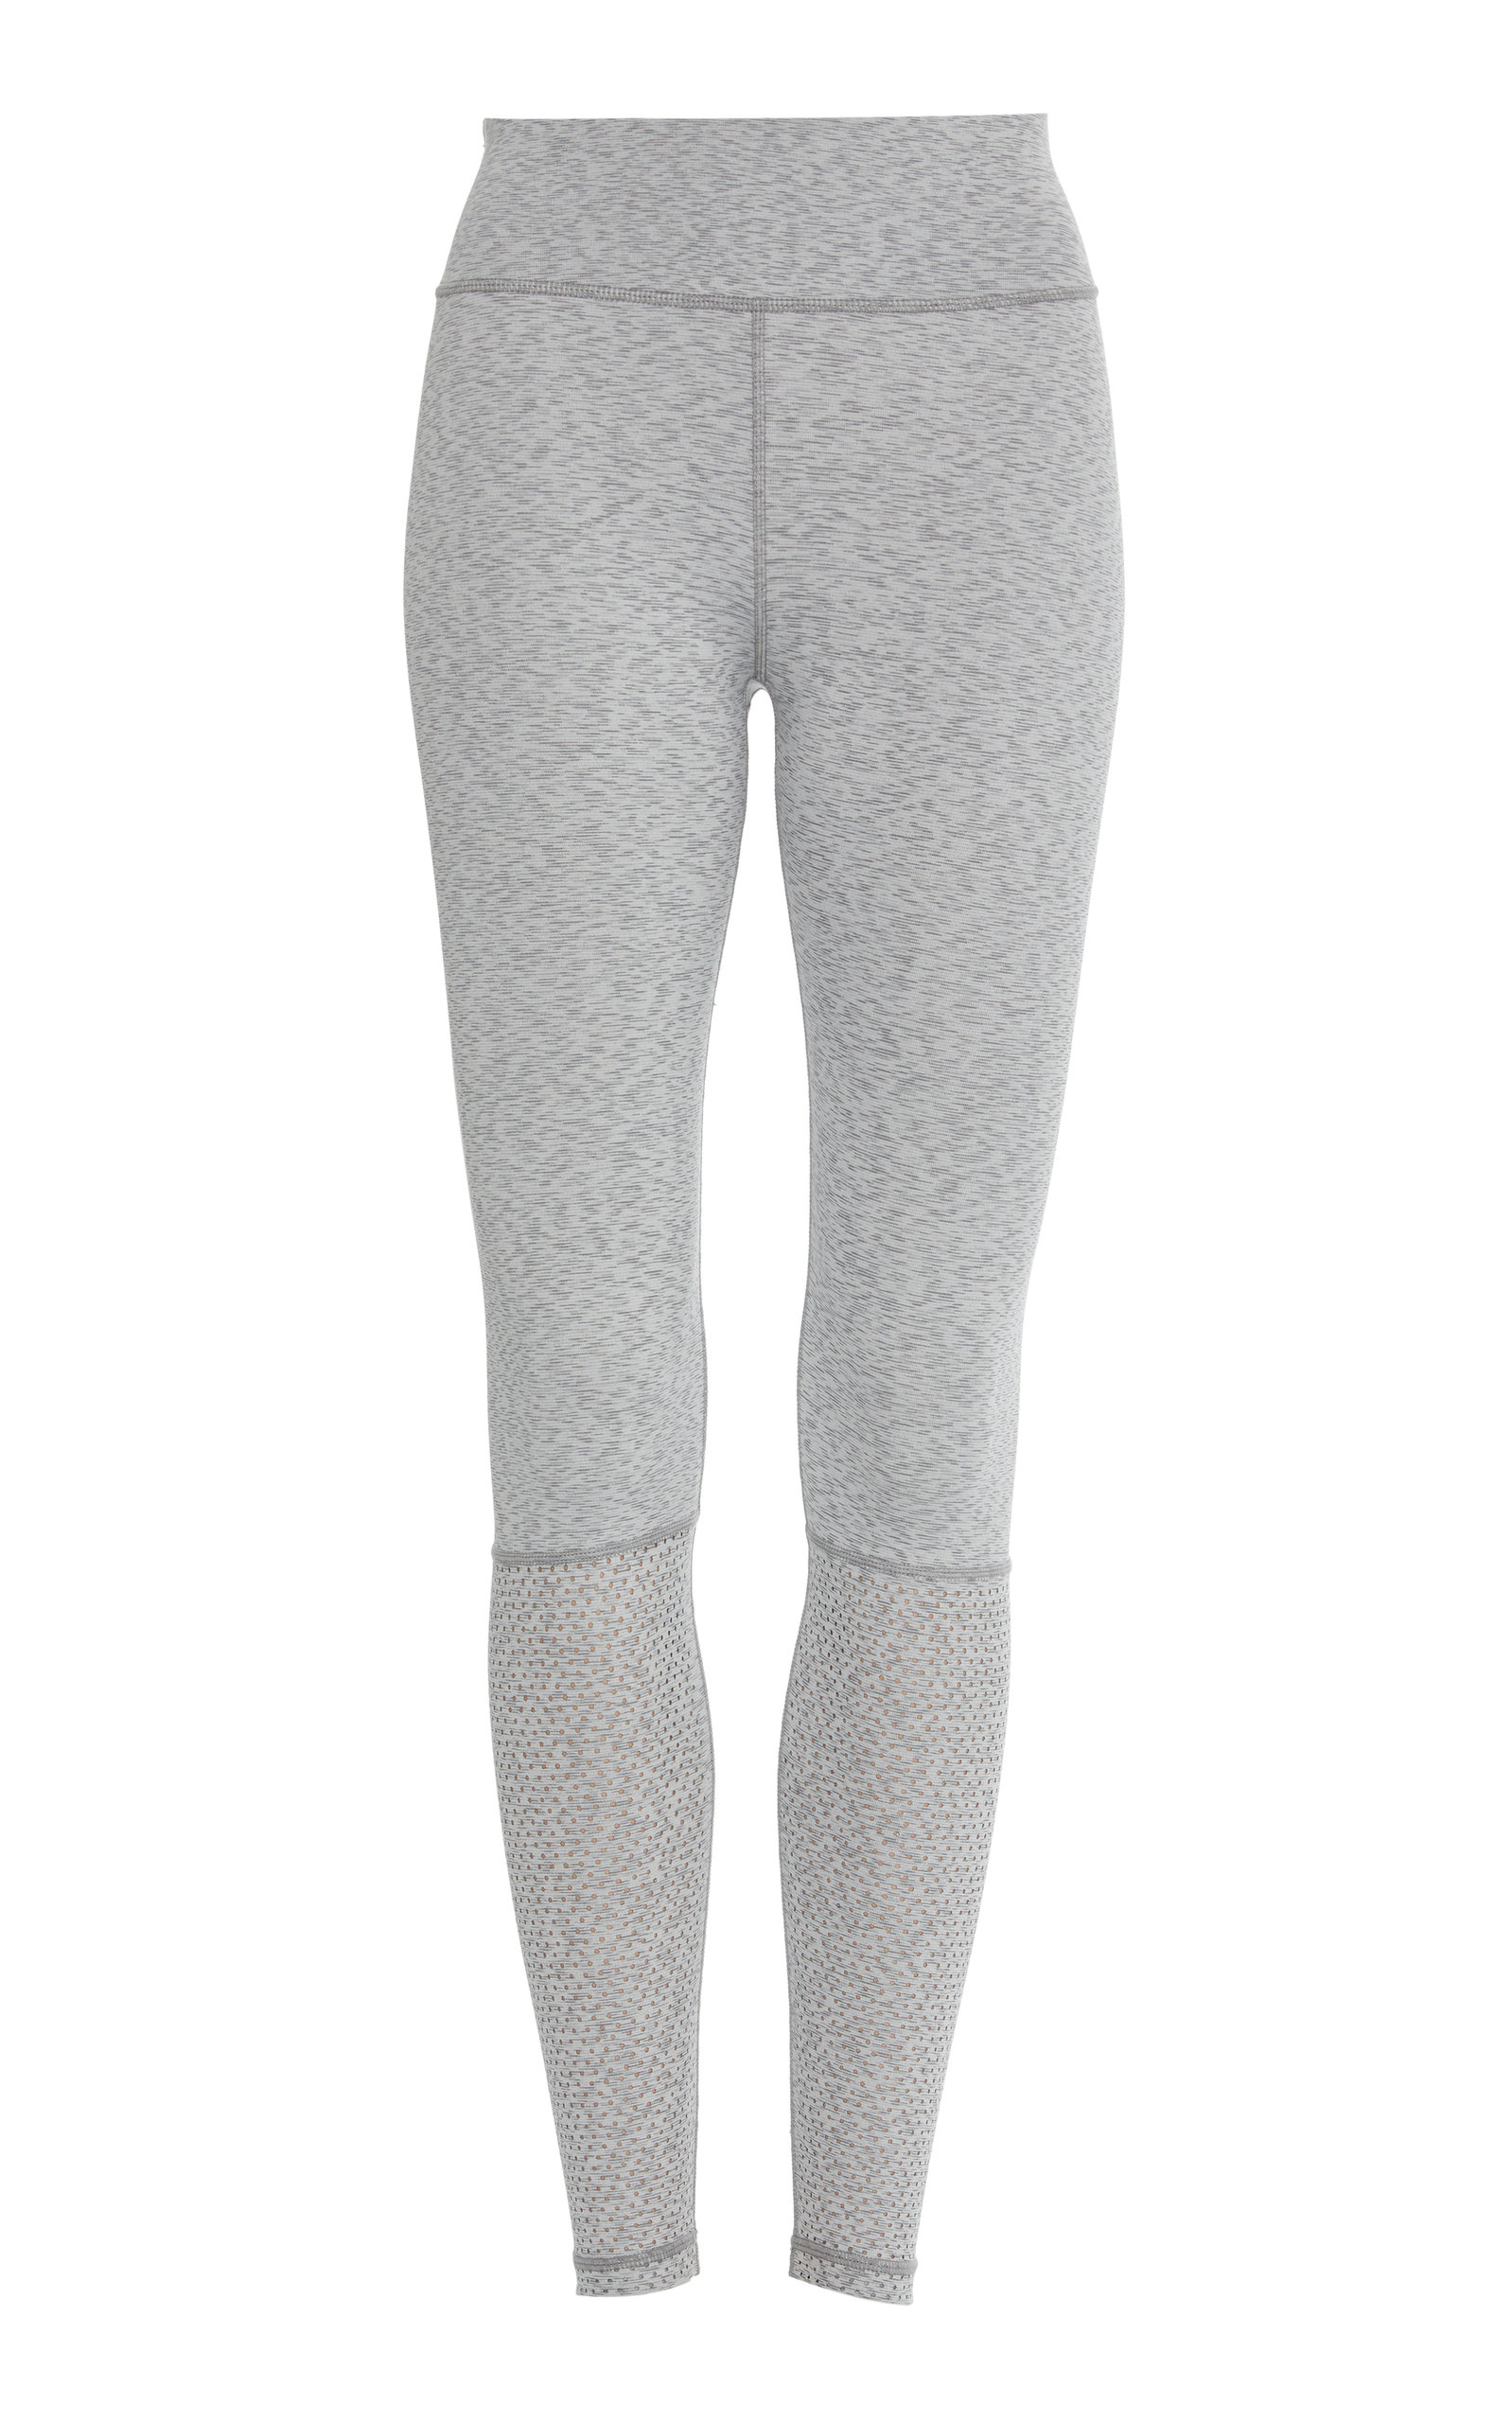 ALL FENIX Laser Line Pant in Grey